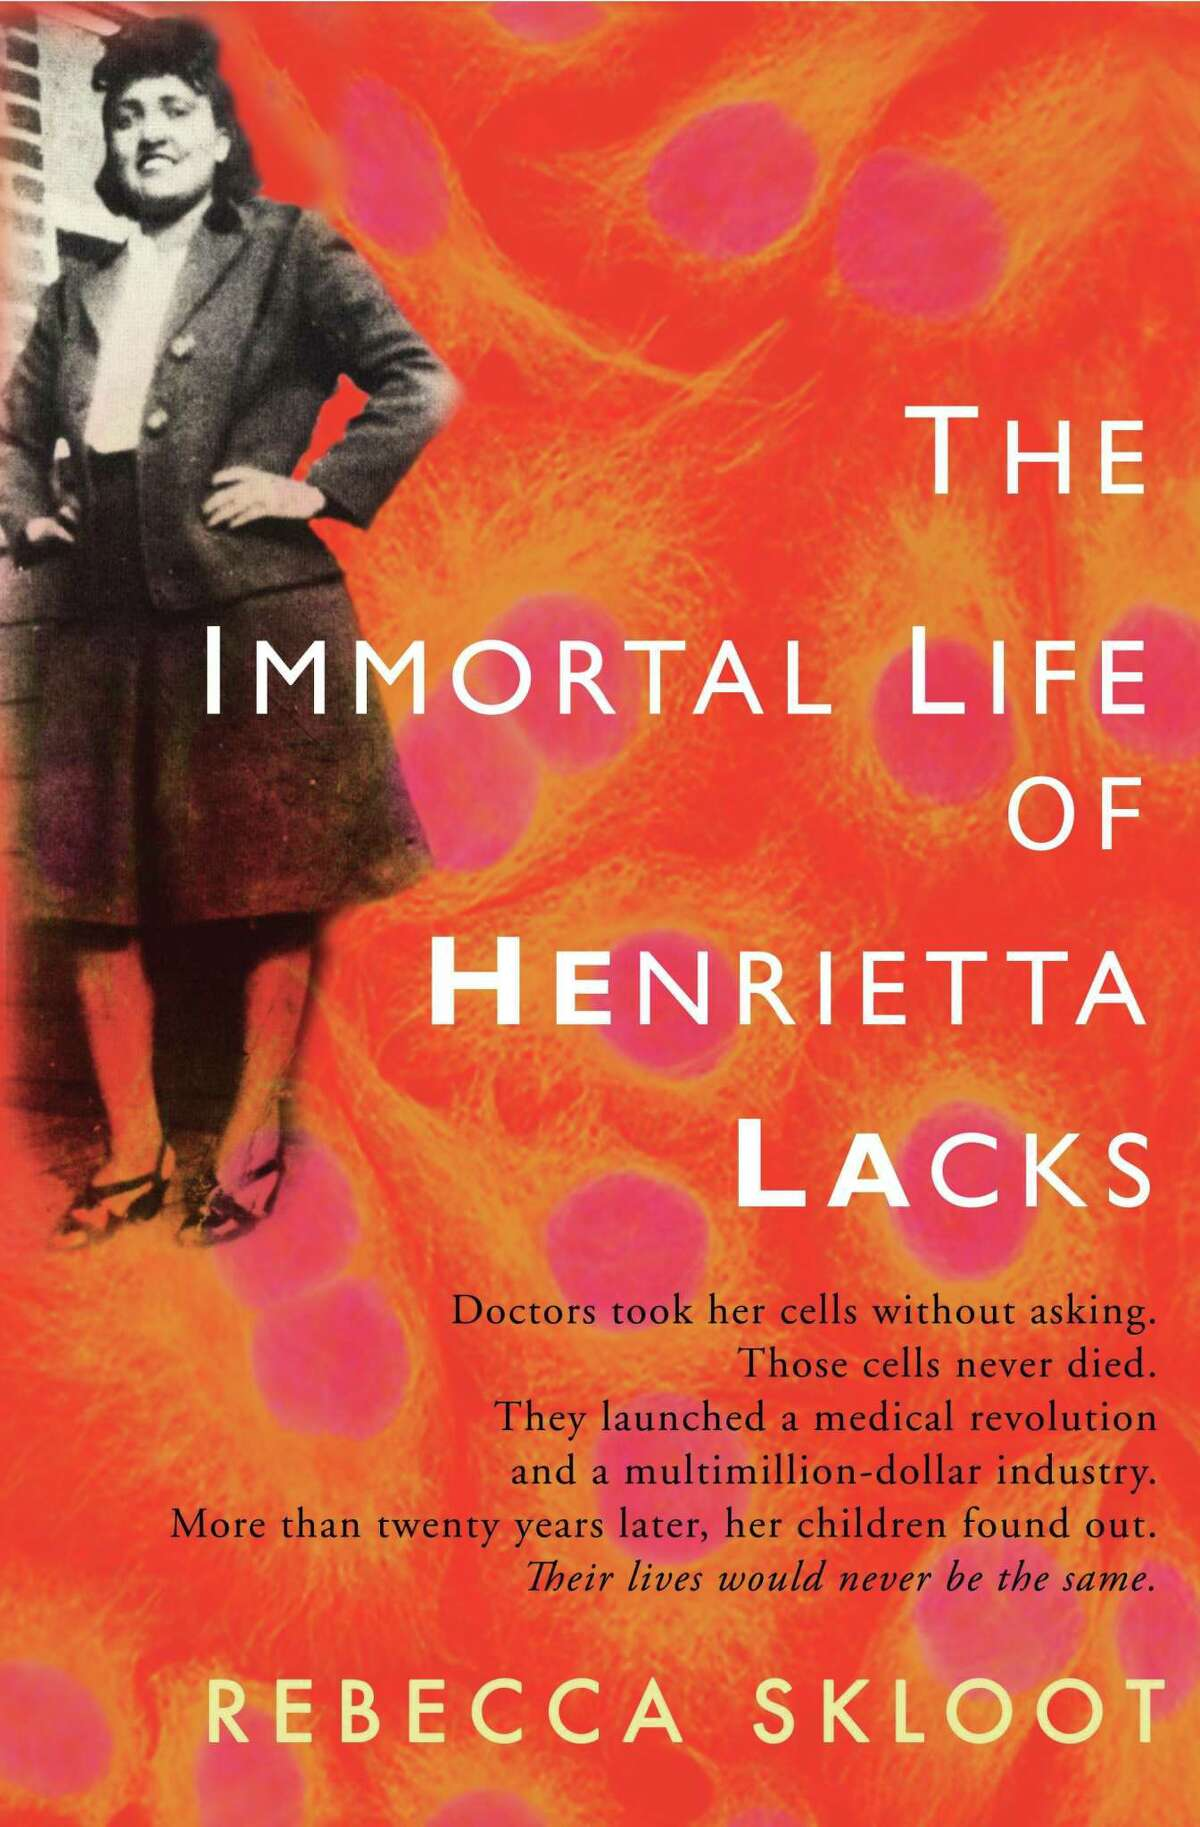 Family members of Henrietta Lacks will speak during a virtual lecture Feb. 23, 2021, hosted by the Houston Holocaust Museum and Houston Museum of Natural Science.